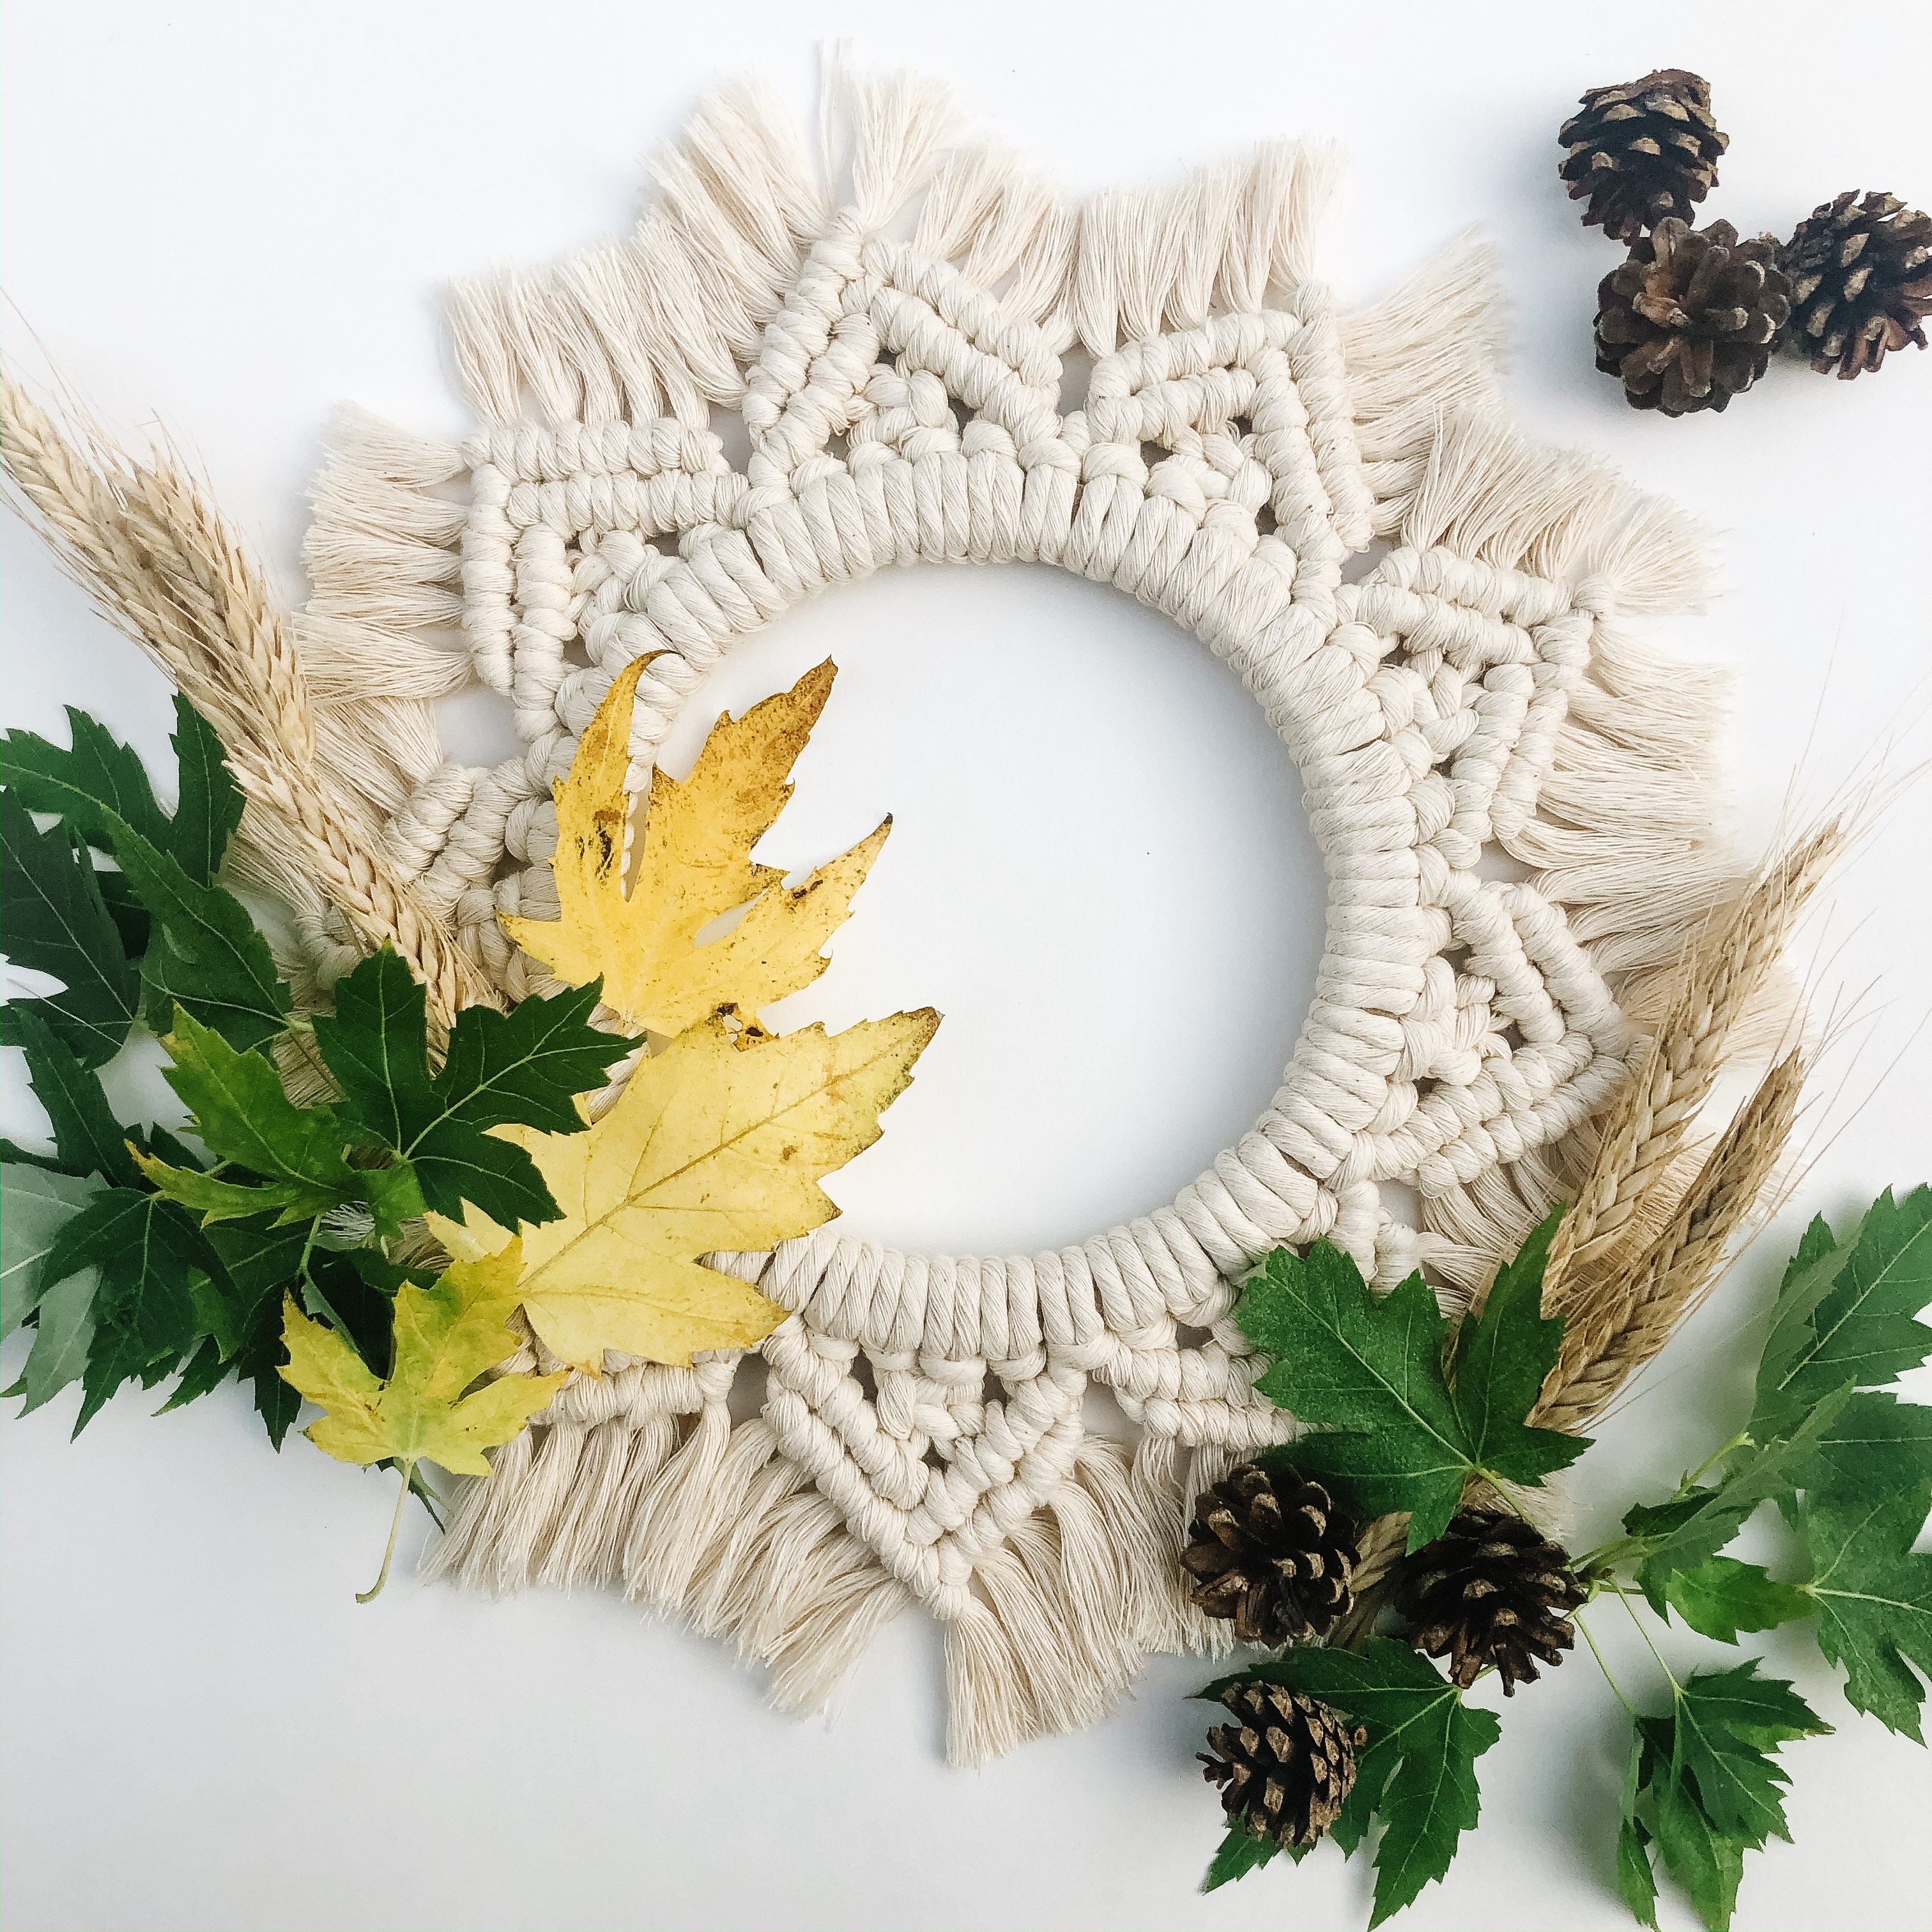 Crafts and Craft at the White Whale – Macrame Wreaths!